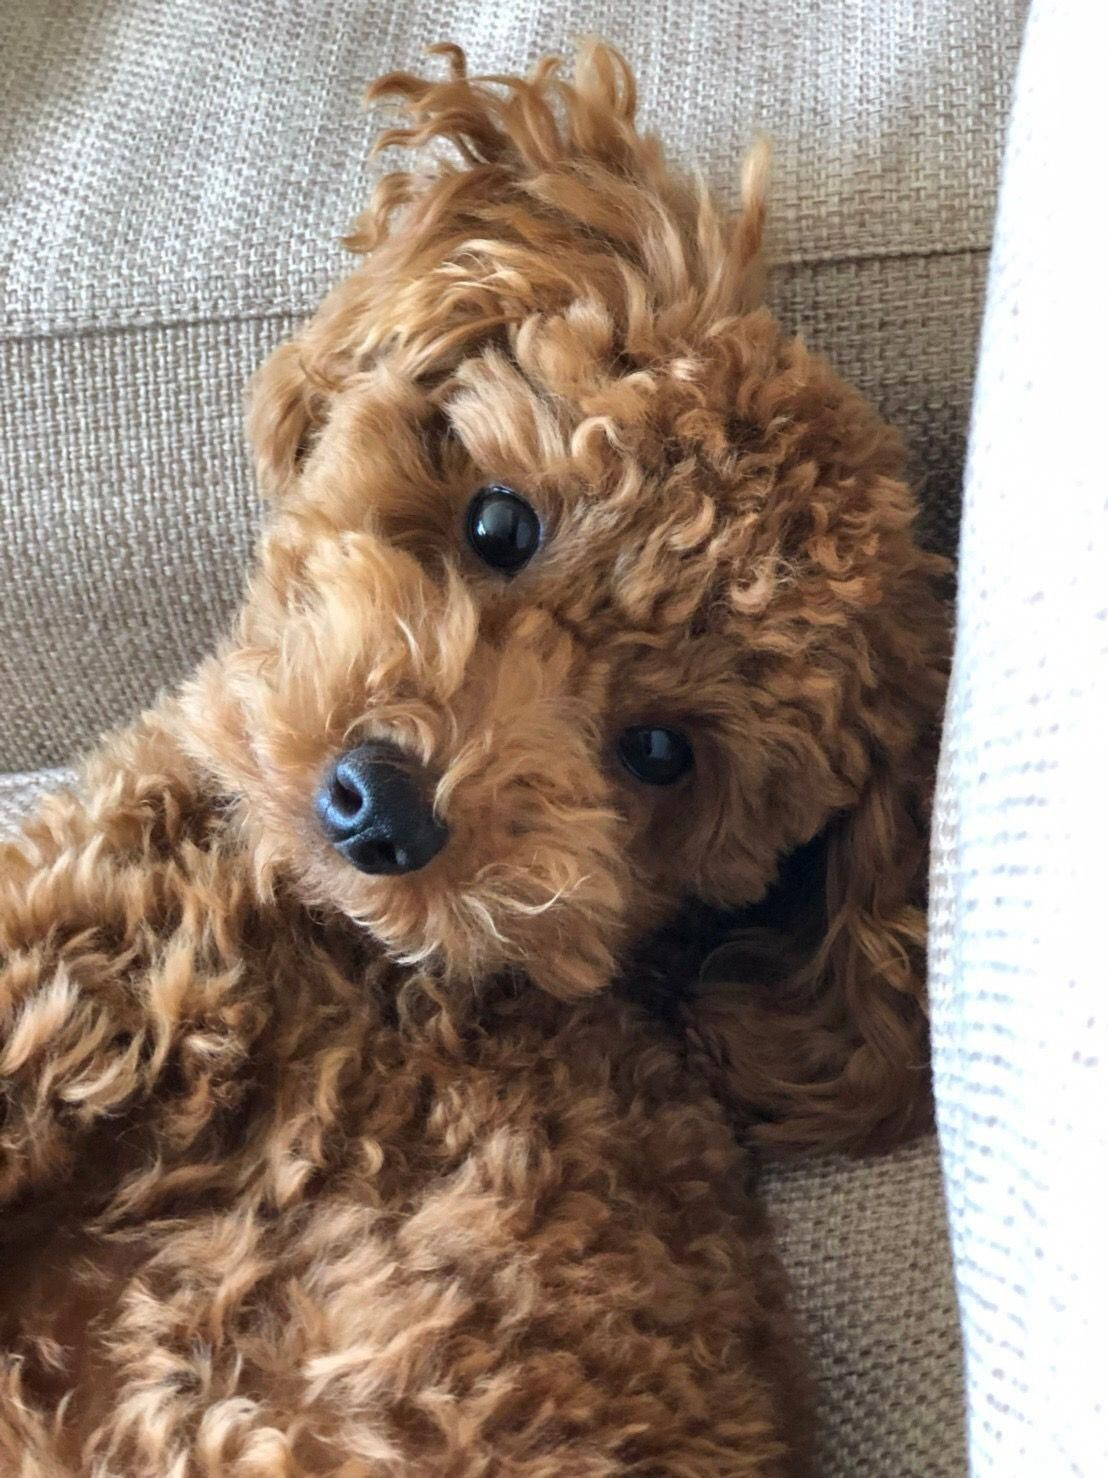 The Traits We Admire About The Athletic Poodle Puppy